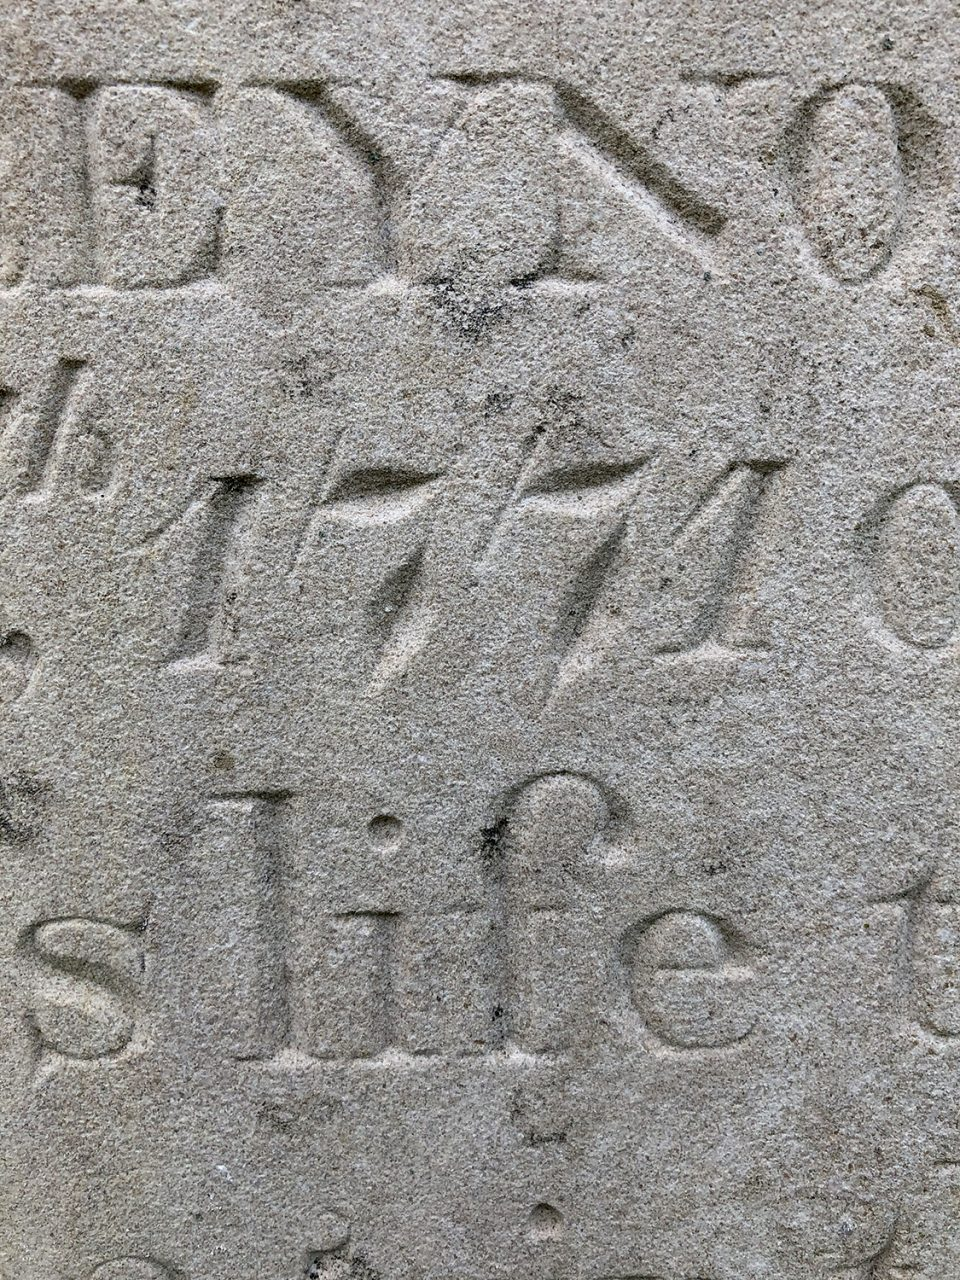 An extraordinary example of the incredible craftsmanship in the stone carving of these 200 year-old grave stones.